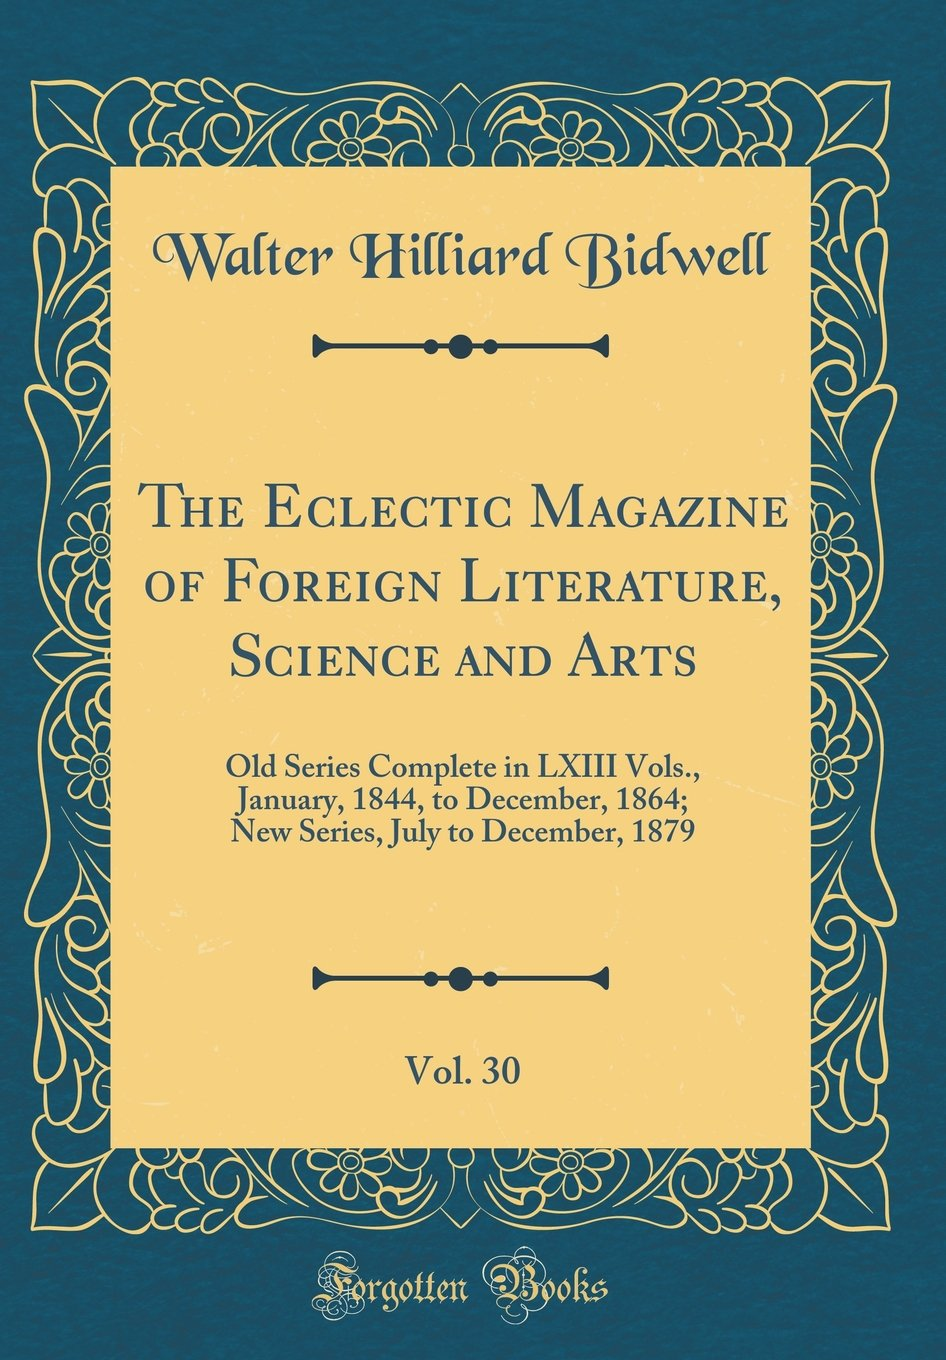 Download The Eclectic Magazine of Foreign Literature, Science and Arts, Vol. 30: Old Series Complete in LXIII Vols., January, 1844, to December, 1864; New Series, July to December, 1879 (Classic Reprint) pdf